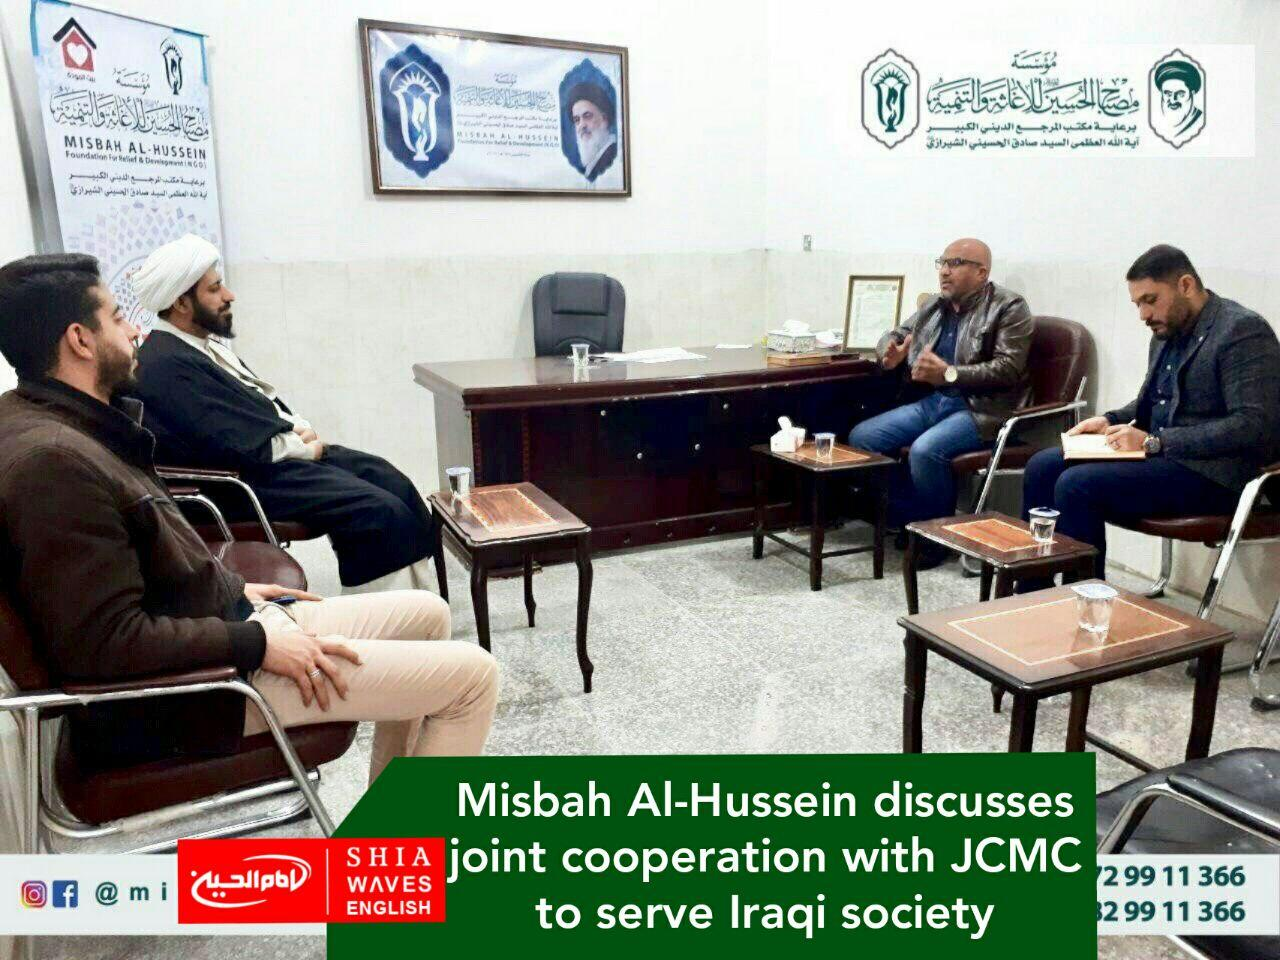 Photo of Misbah Al-Hussein discusses joint cooperation with JCMC to serve Iraqi society